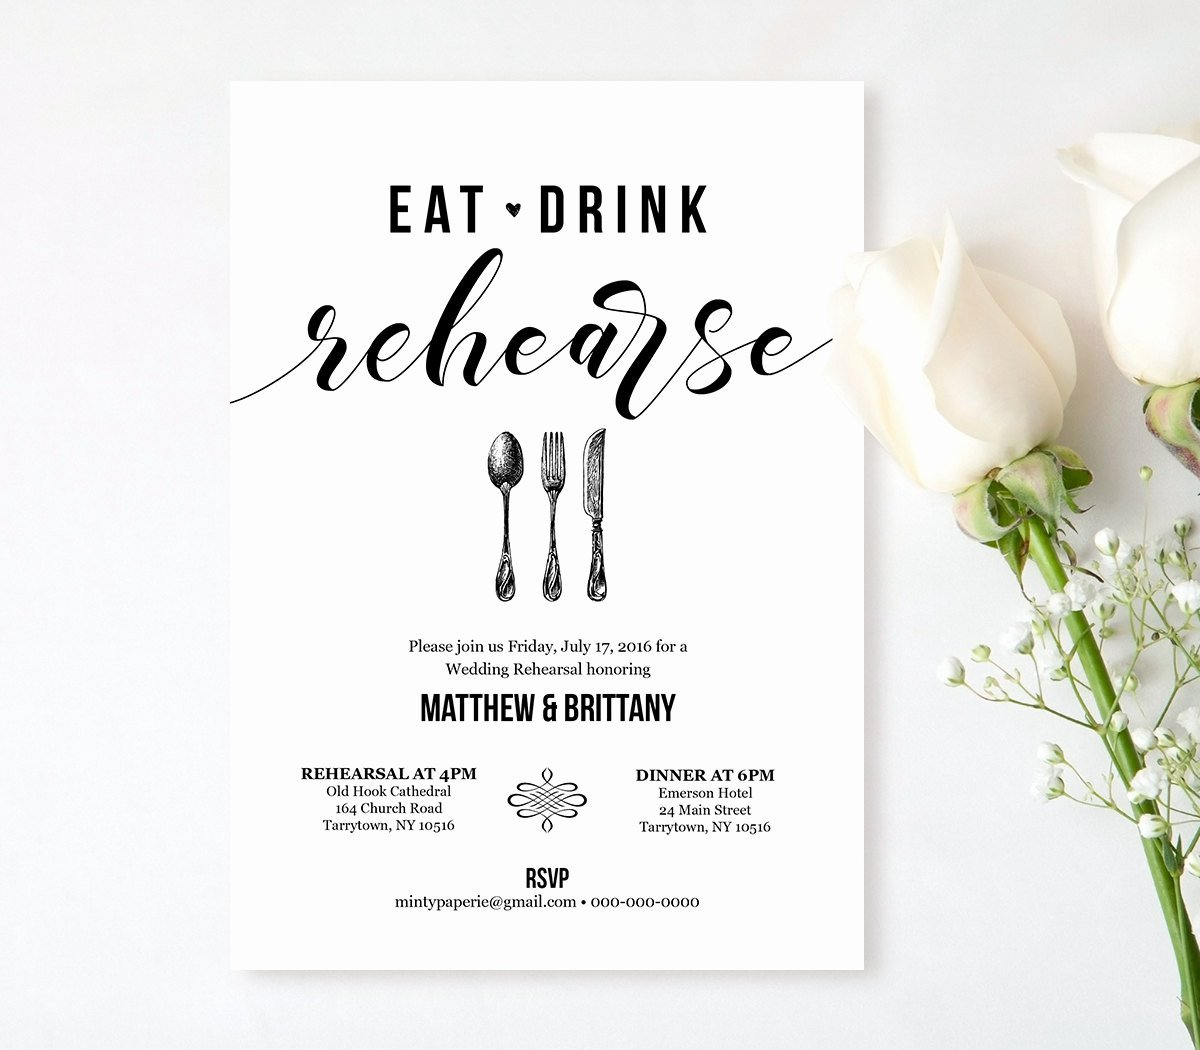 Dinner Invitation Template Free Printable Lovely Rehearsal Dinner Invitation Template